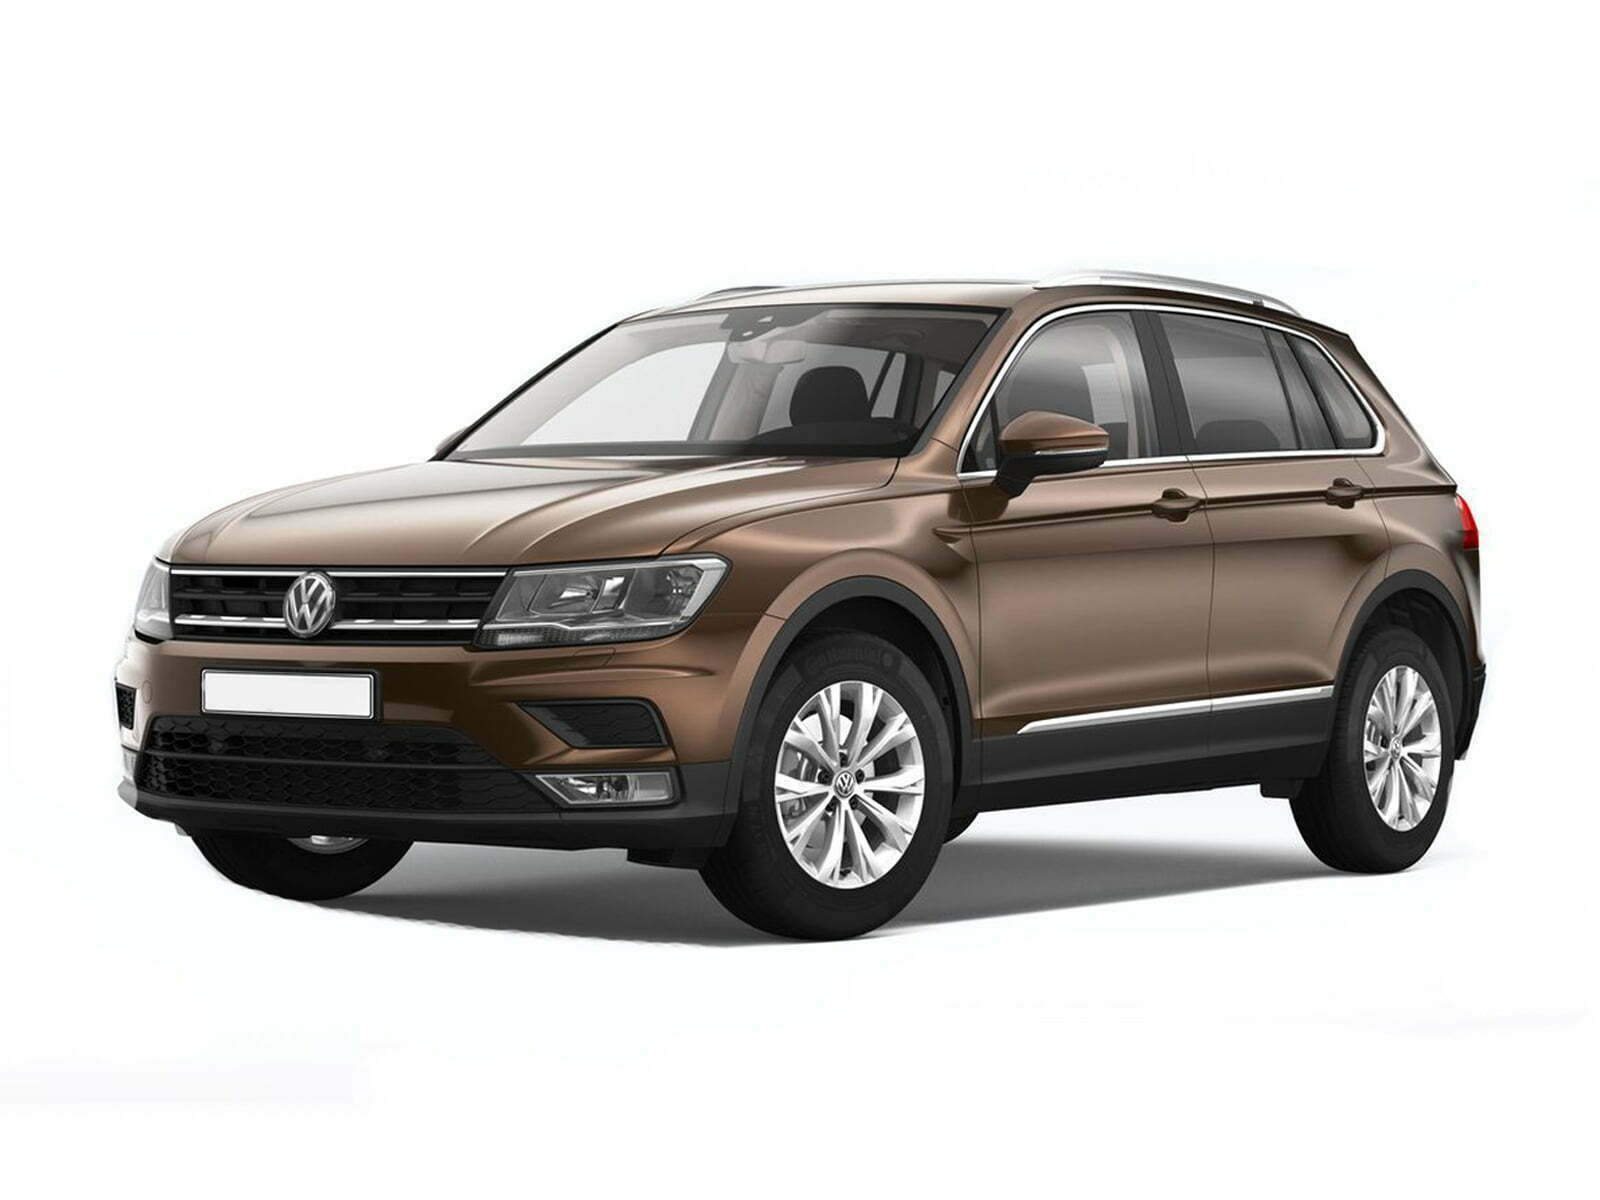 volkswagen tiguan leasen nu extra voordelig bij leaseroute. Black Bedroom Furniture Sets. Home Design Ideas